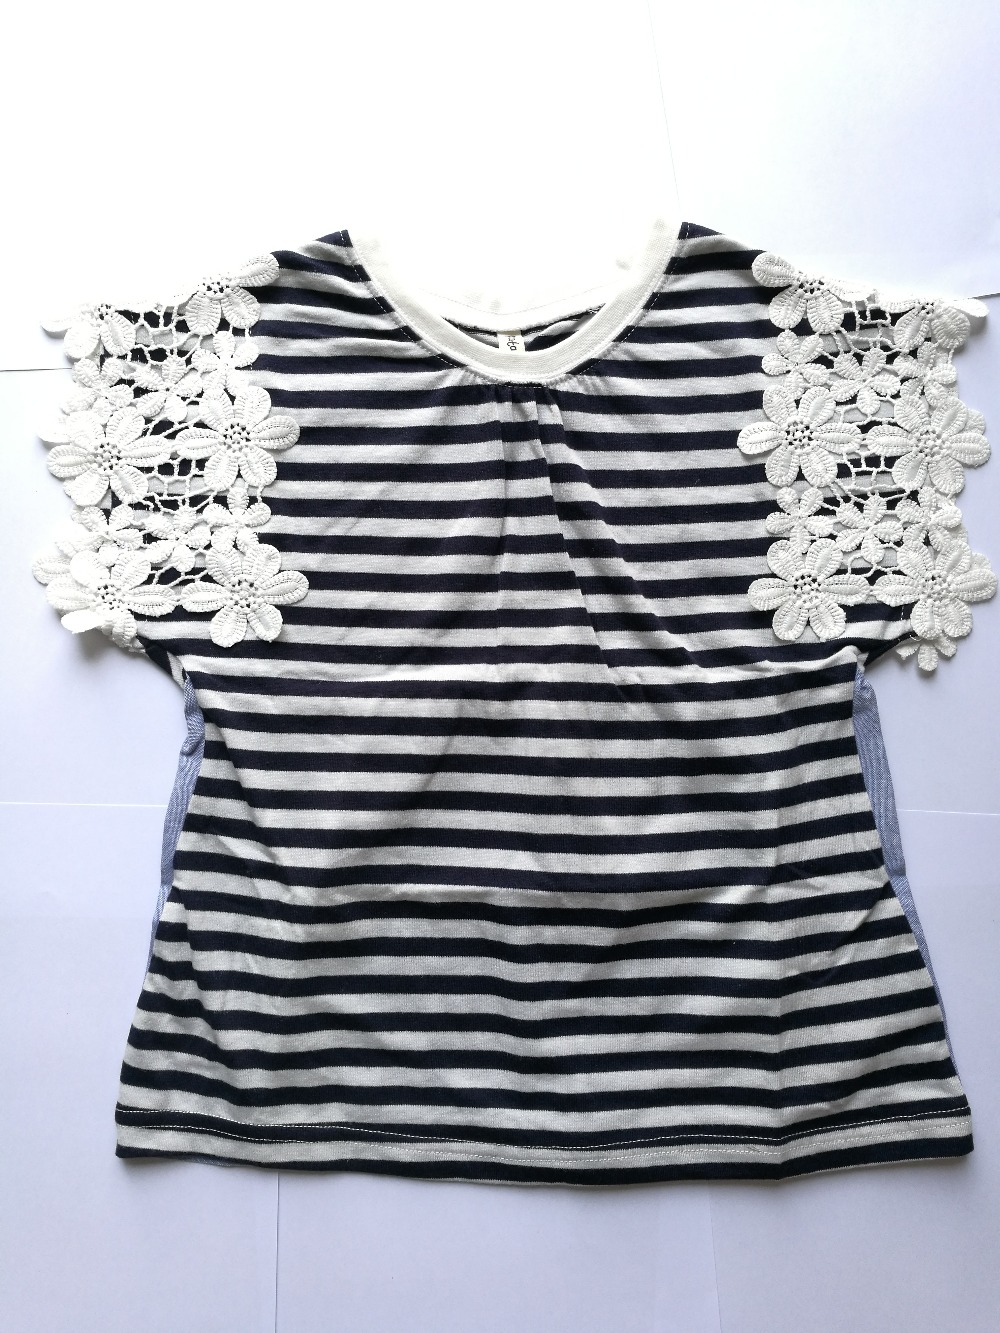 Princess party dress black and white stripes summer girl dress princess party dress black and white stripes summer girl dress embroidered flowers girls childrens clothing in dresses from mother kids on aliexpress mightylinksfo